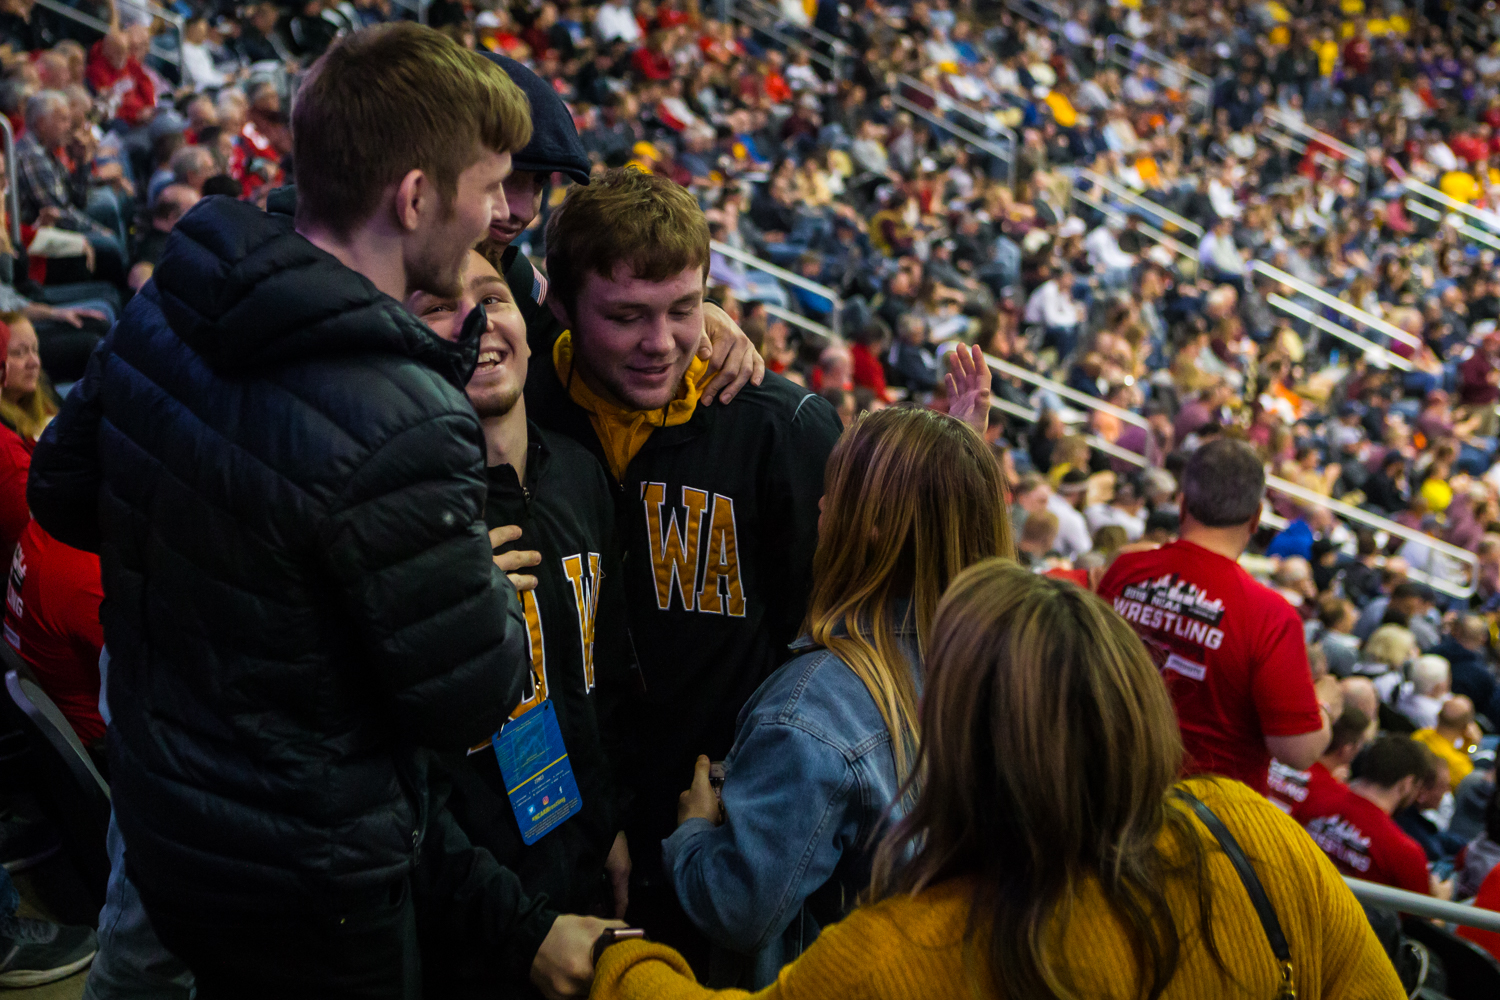 Iowa%27s+Spencer+Lee+celebrates+his+first-place+finish+in+the+125-pound+weight+class+with+teammates+and+friends+during+the+final+session+of+the+2019+NCAA+D1+Wrestling+Championships+at+PPG+Paints+Arena+in+Pittsburgh%2C+PA+on+Saturday%2C+March+23%2C+2019.